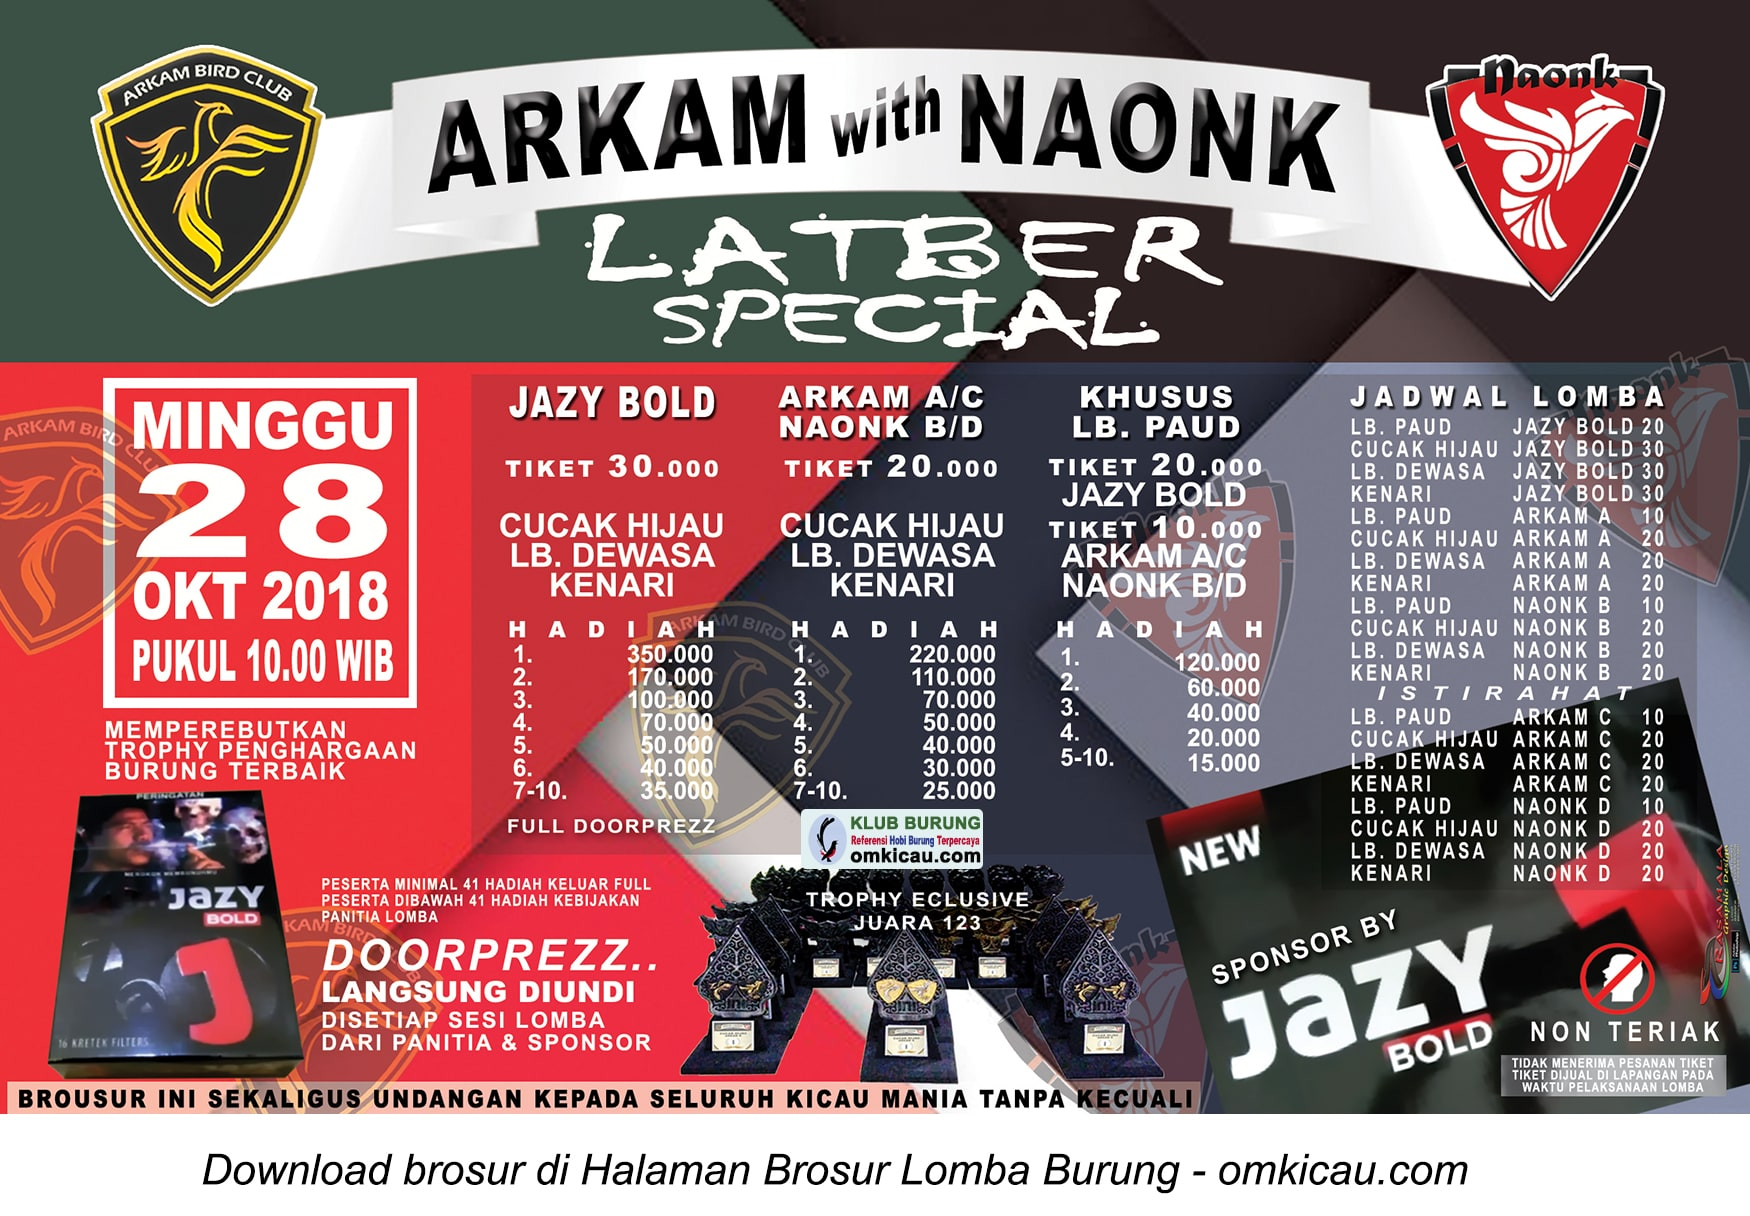 Latber Special Arkam with Naonk